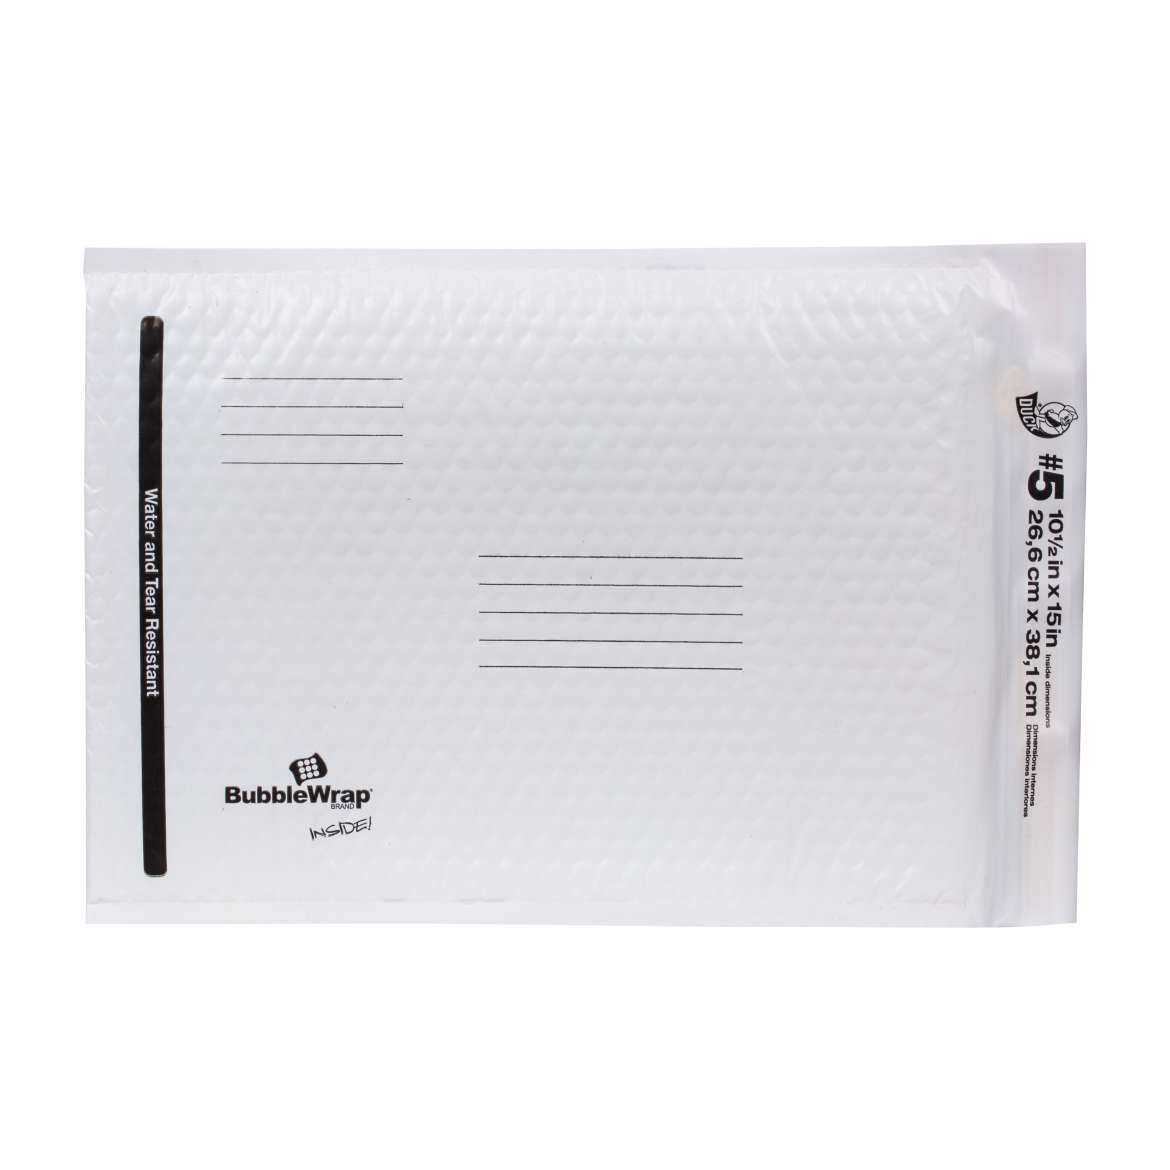 Bubble Wrap® Cushioned Poly Envelope - White, 10.5 in. x 15 in. Image